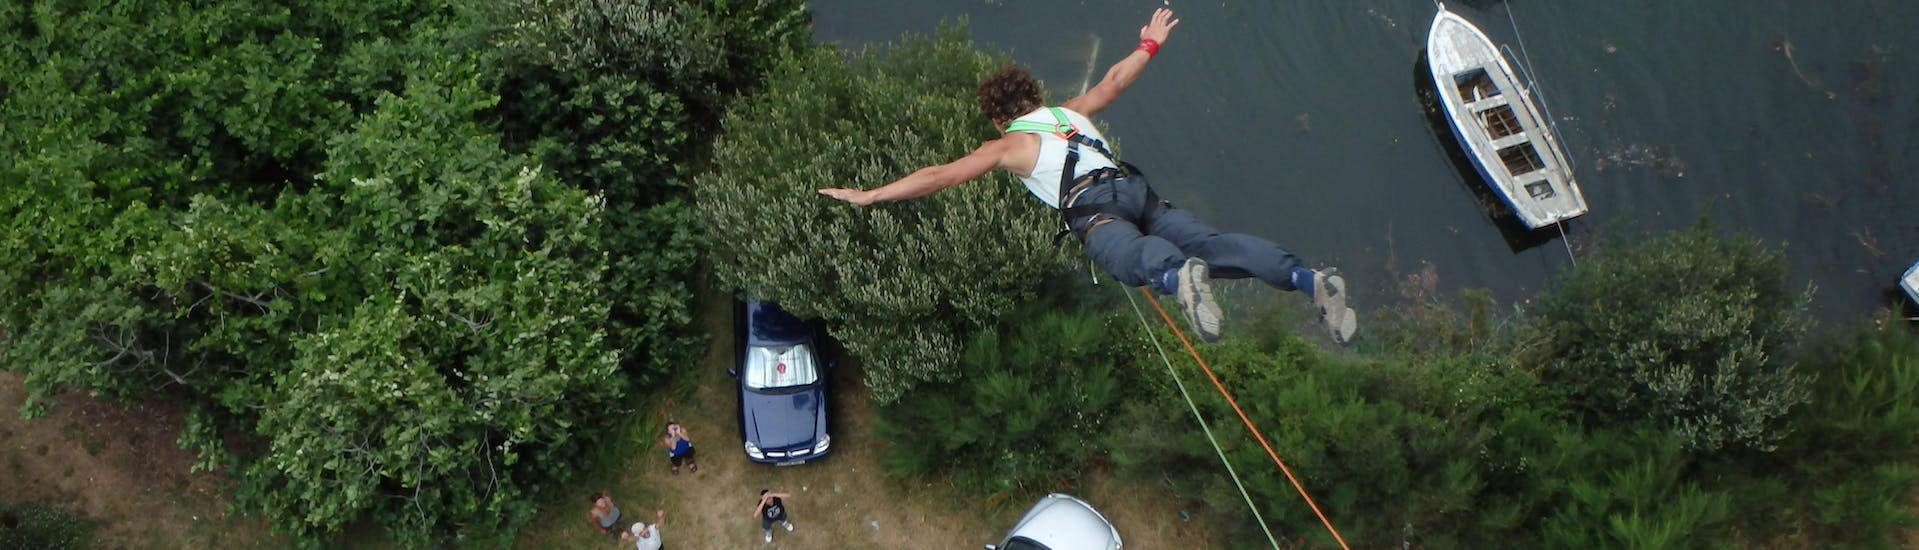 Bungee Jumping from Ceilán Bridge (25m)